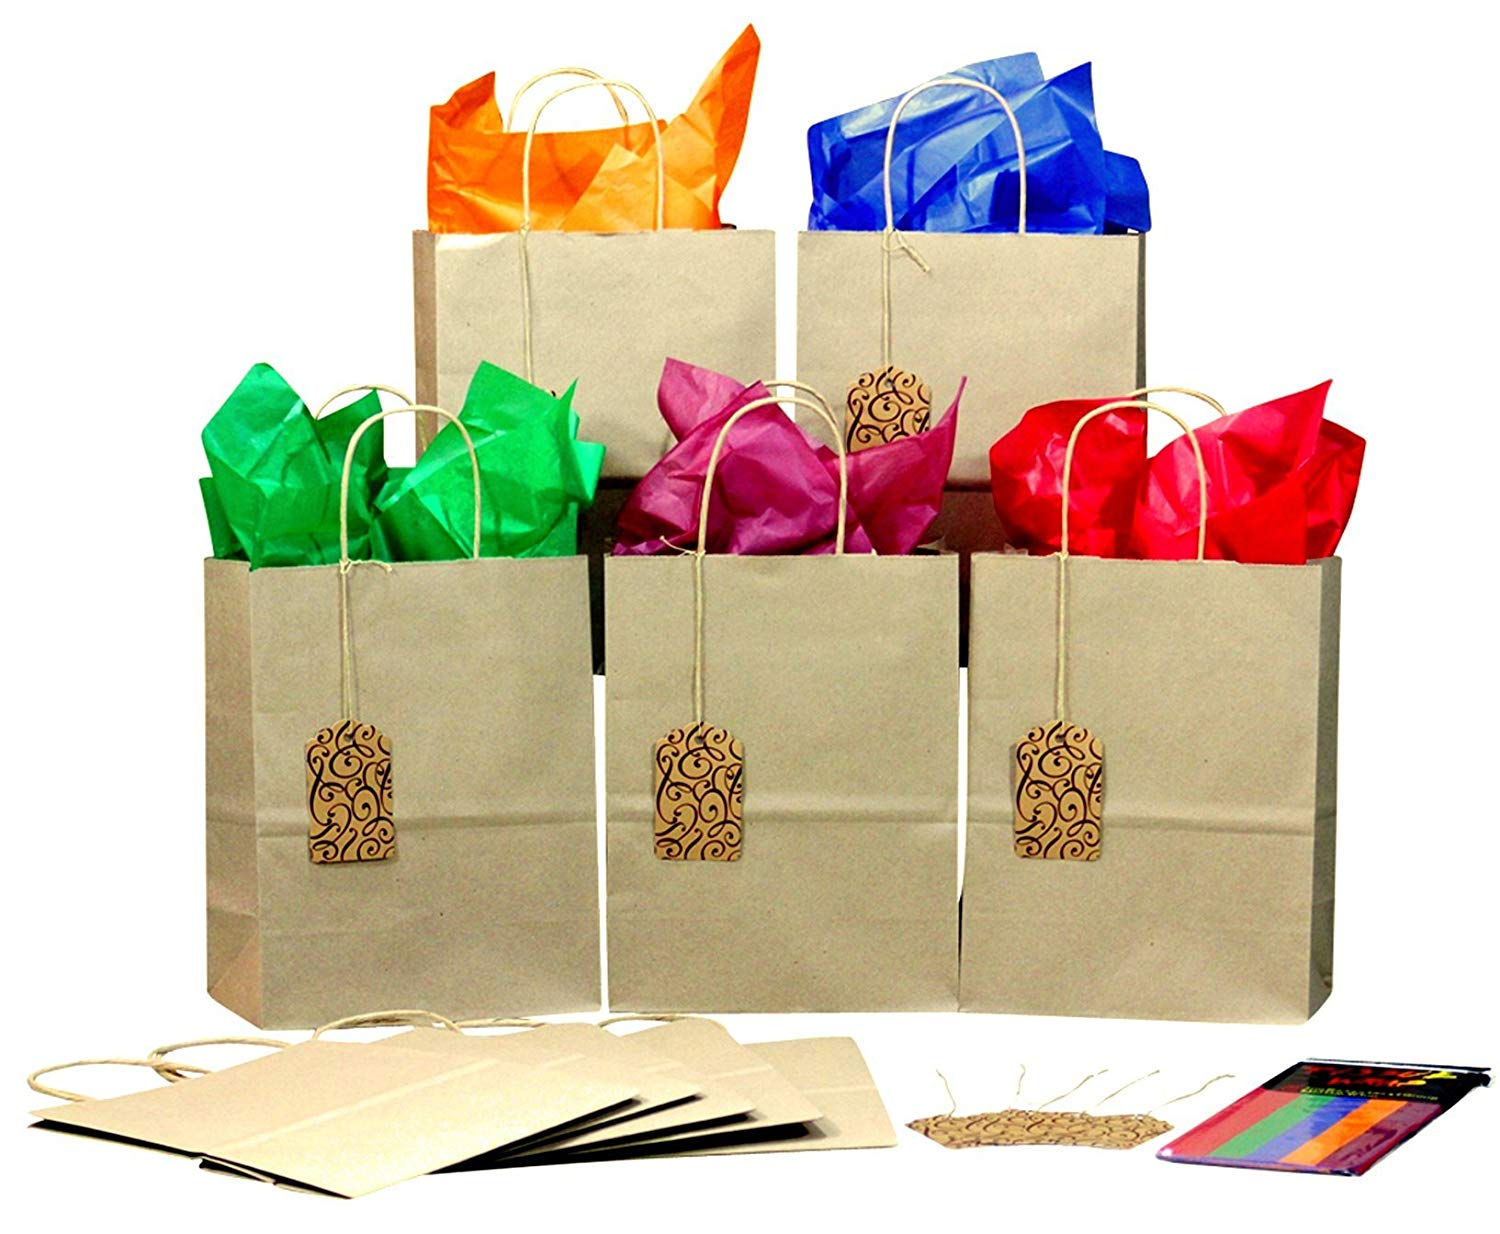 Gift Bags with Color Tissue Paper & Gift Tags - Set of 10 Medium Size Bags with Handles for Birthdays, Office Parties, Holidays - Decorate or Gift As-is